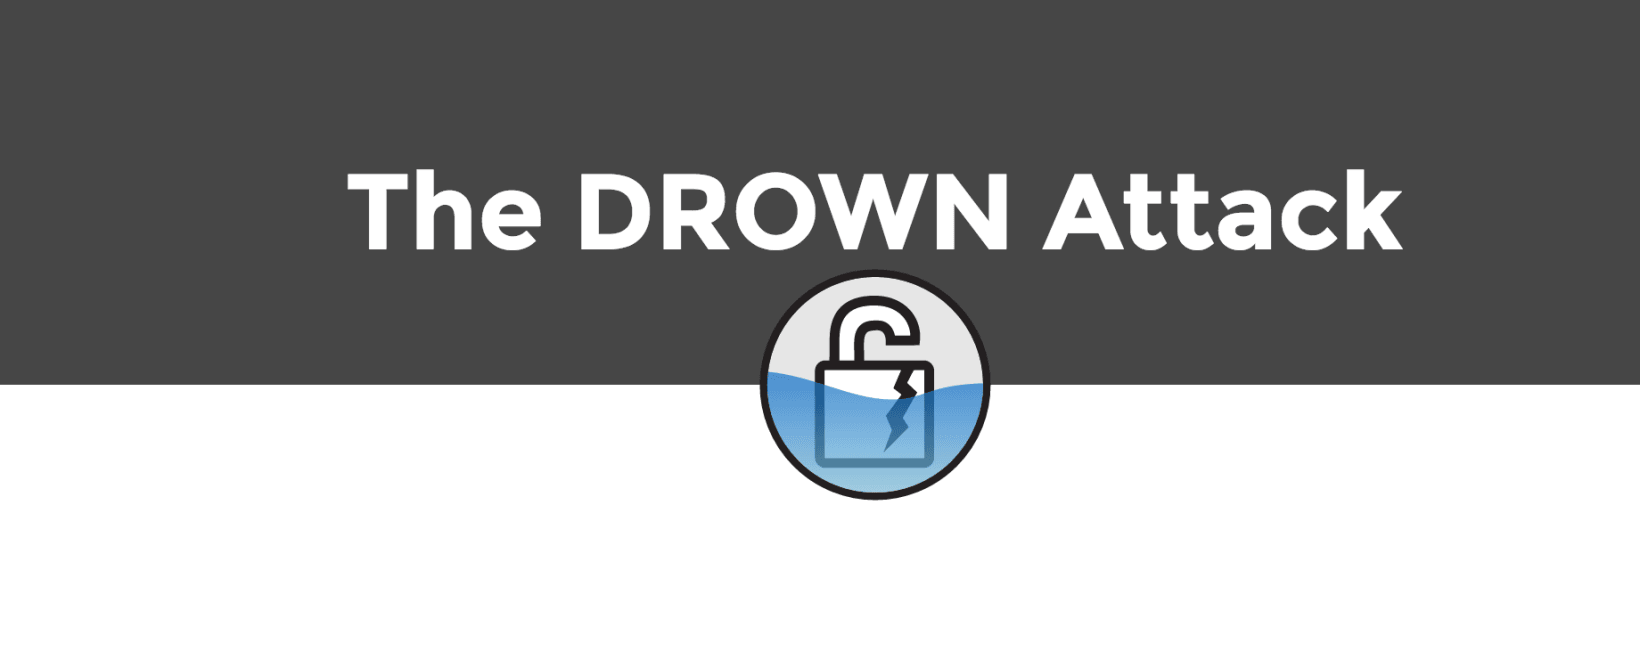 DROWN attack is the new Heartbleed: patch now